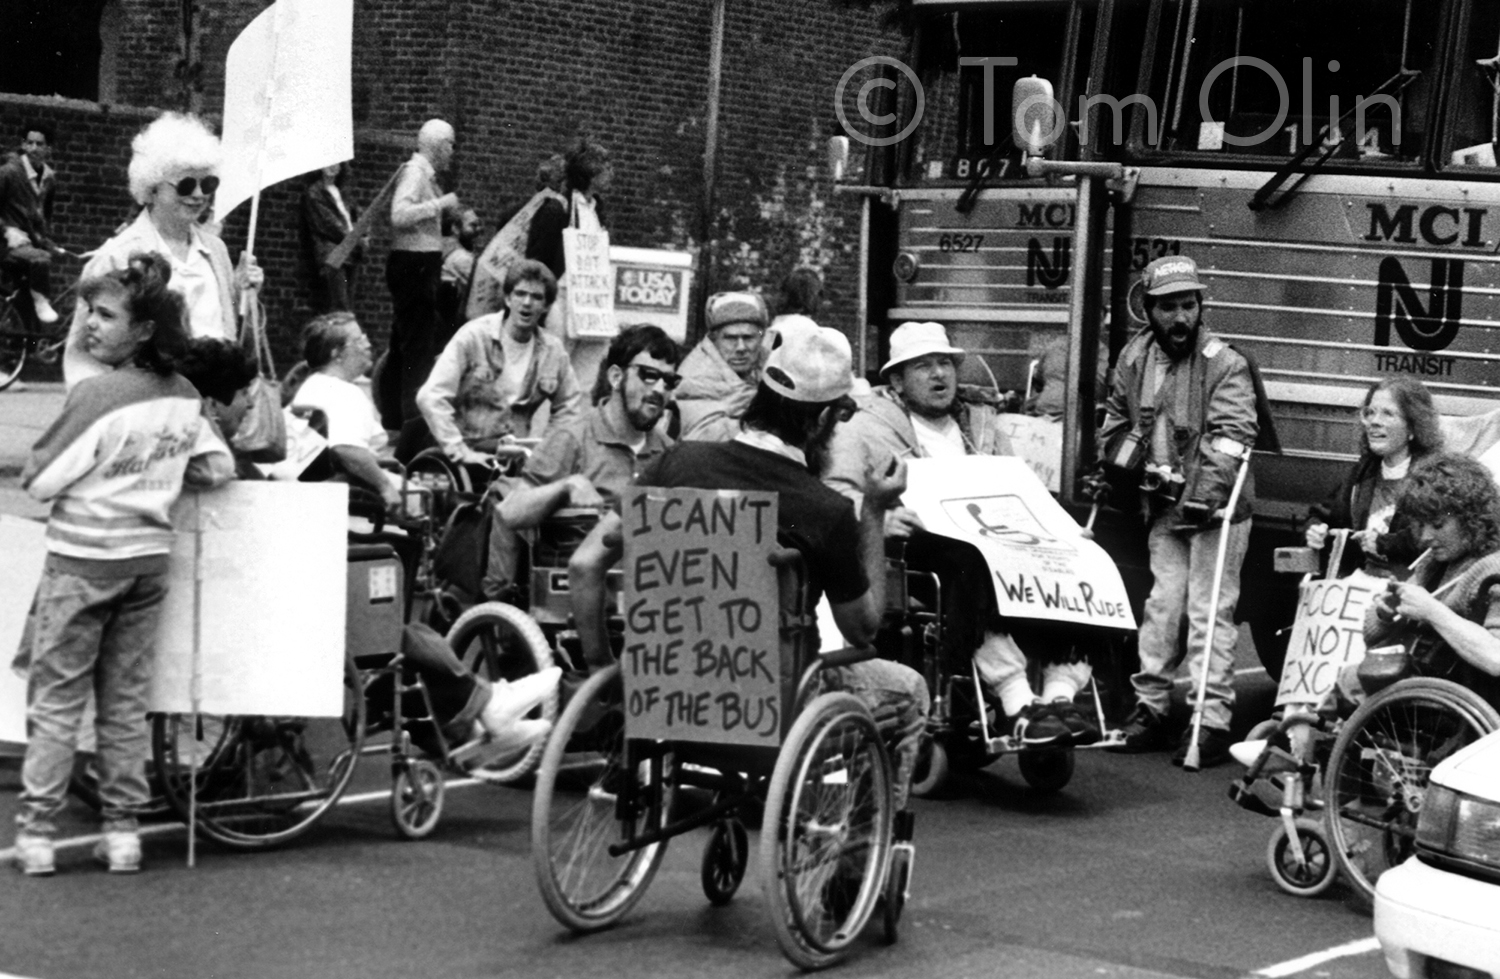 Black and white photo of a group of disability rights activists holding signs. Many are in wheelchairs. In the foreground, a man has a sign on the back of his wheelchair that says I can't even get to the back of the bus.